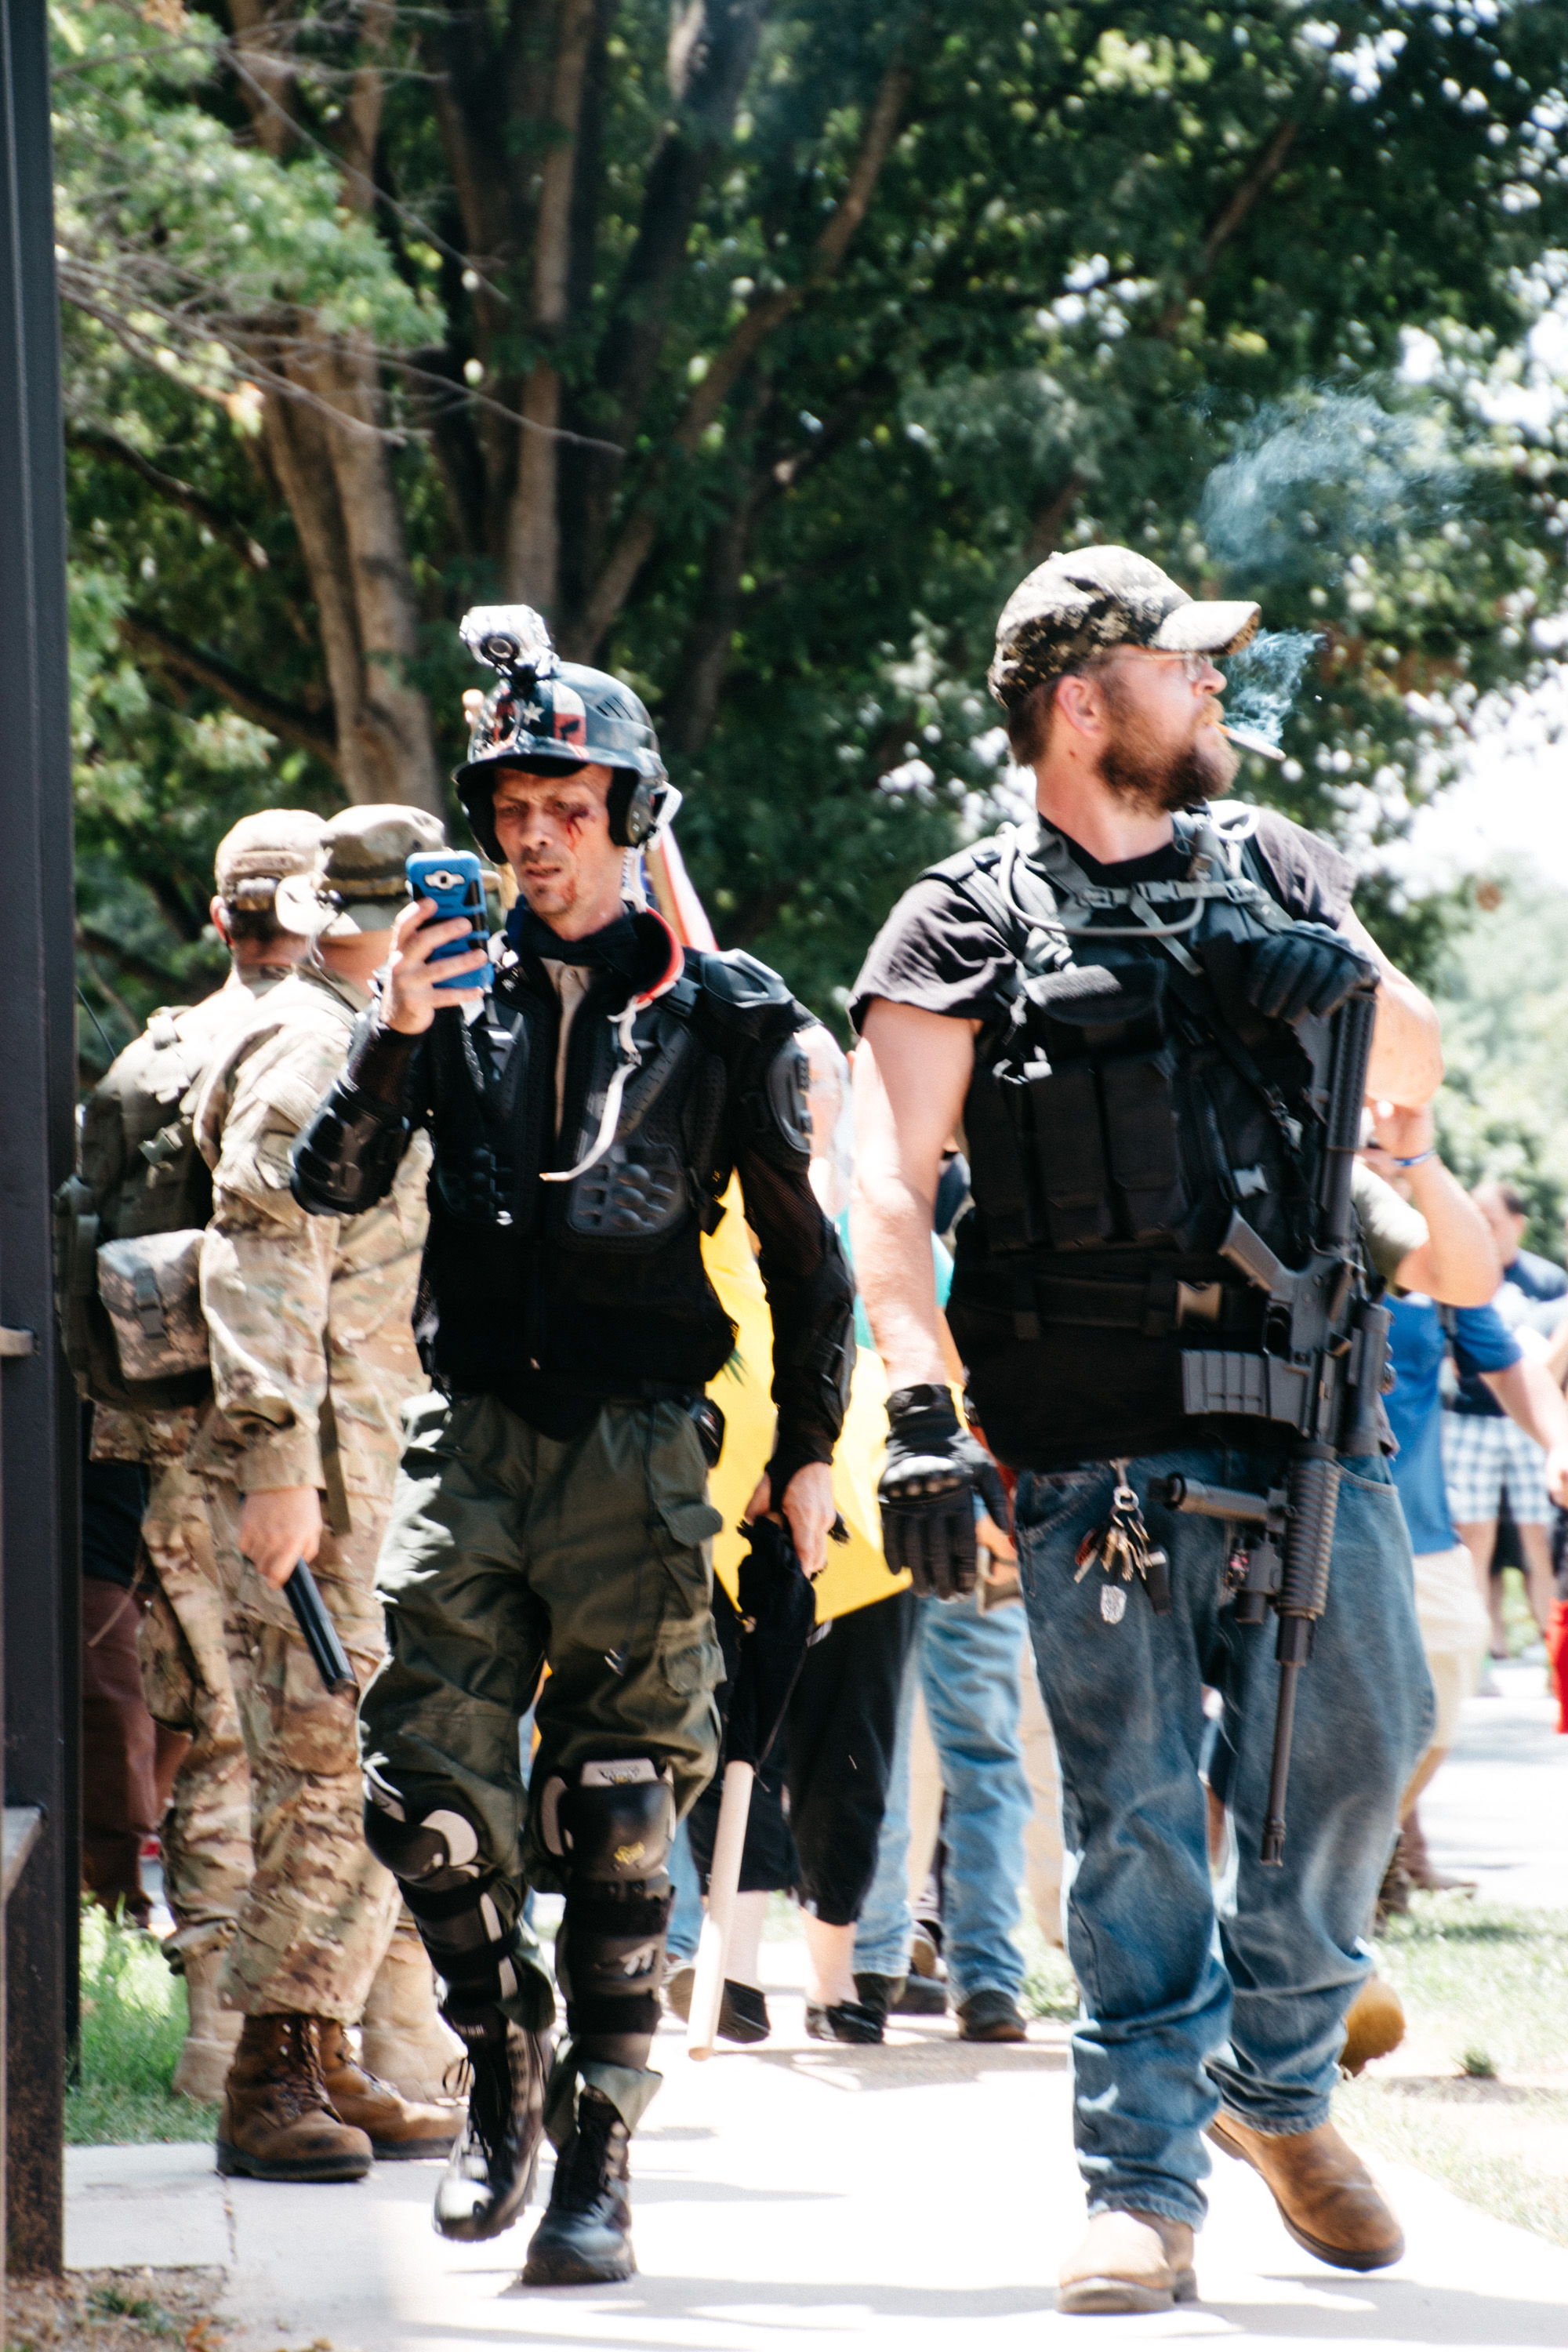 charlottesville-protests-14.jpg